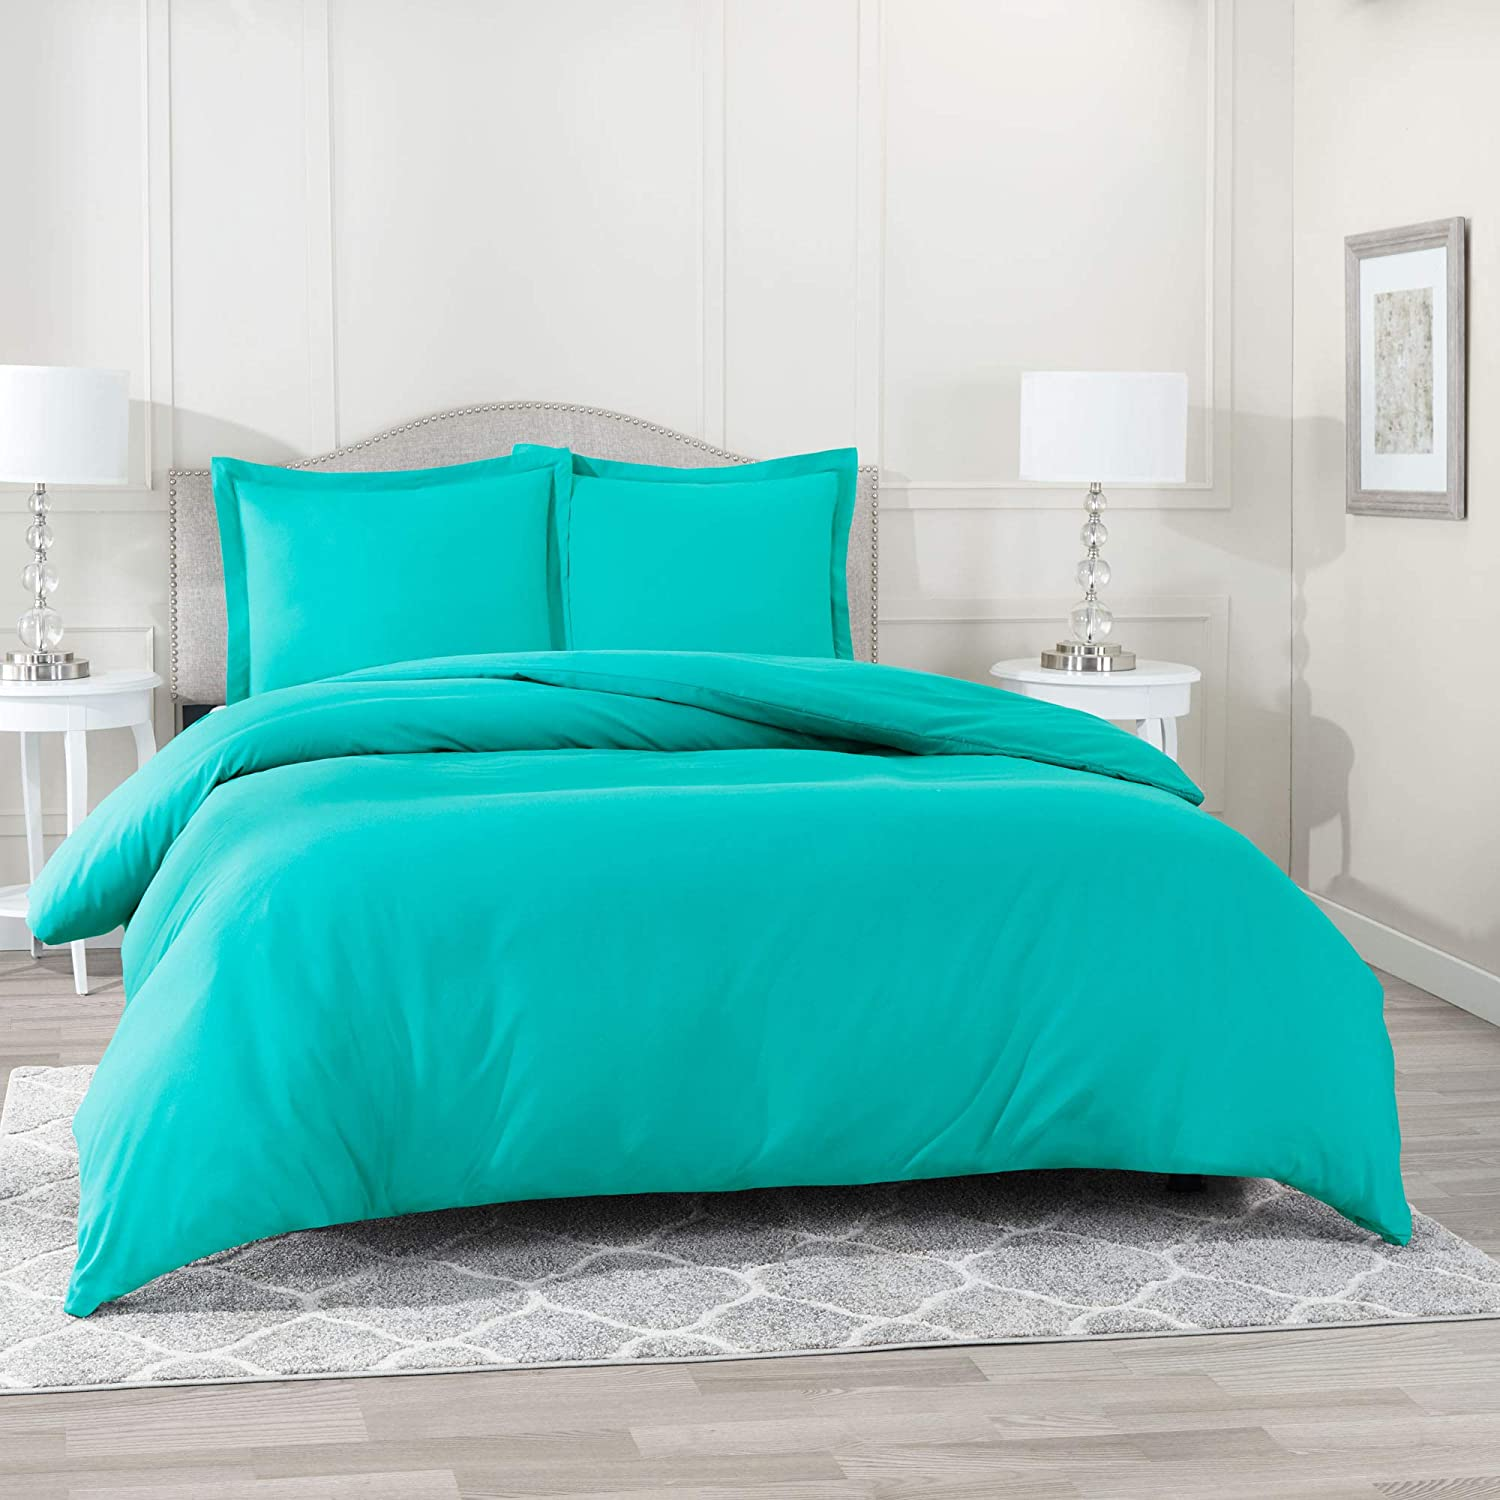 "Nestl Bedding Duvet Cover 3 Piece Set – Ultra Soft Double Brushed Microfiber Hotel Collection – Comforter Cover with Button Closure and 2 Pillow Shams, Teal - California King 98""x104"""